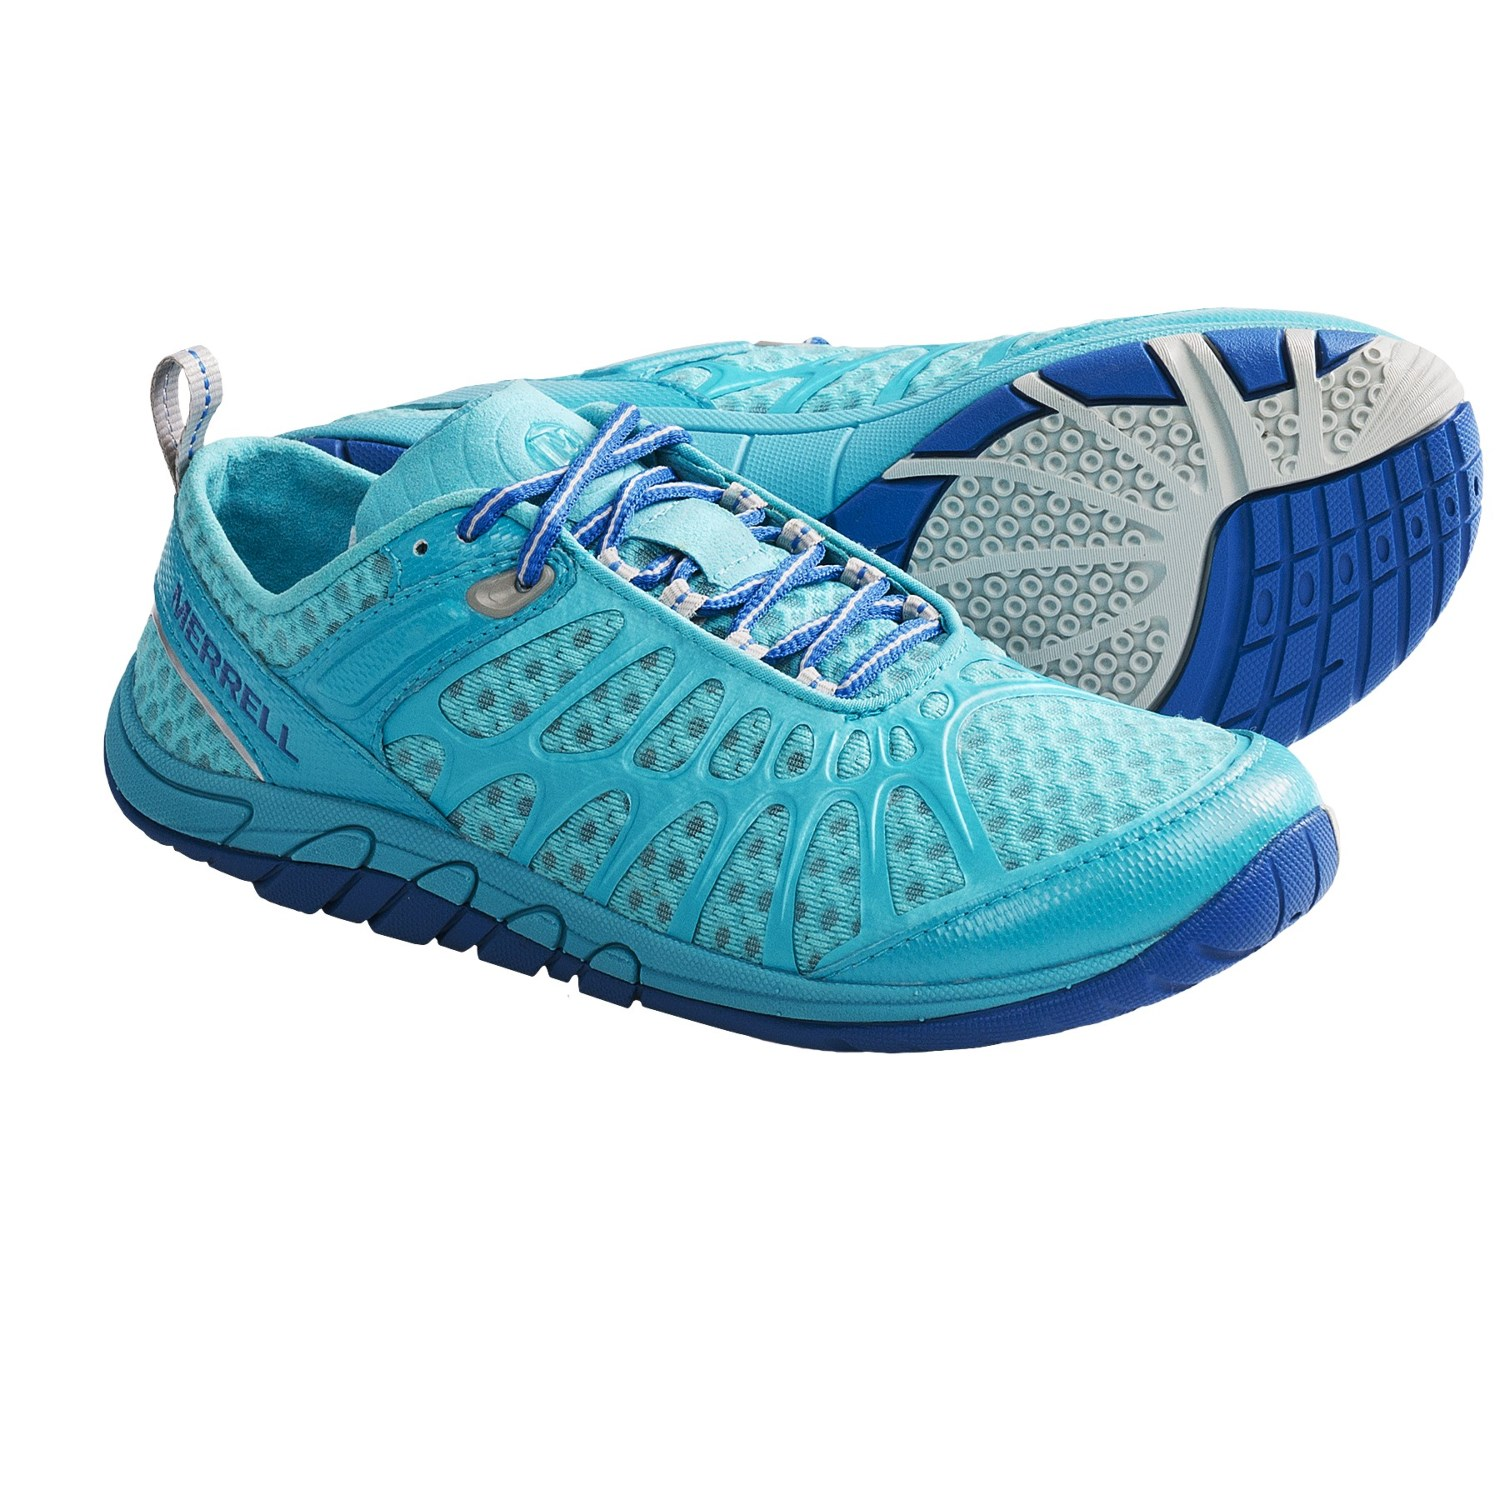 Cross trainer shoes women. Clothing stores online